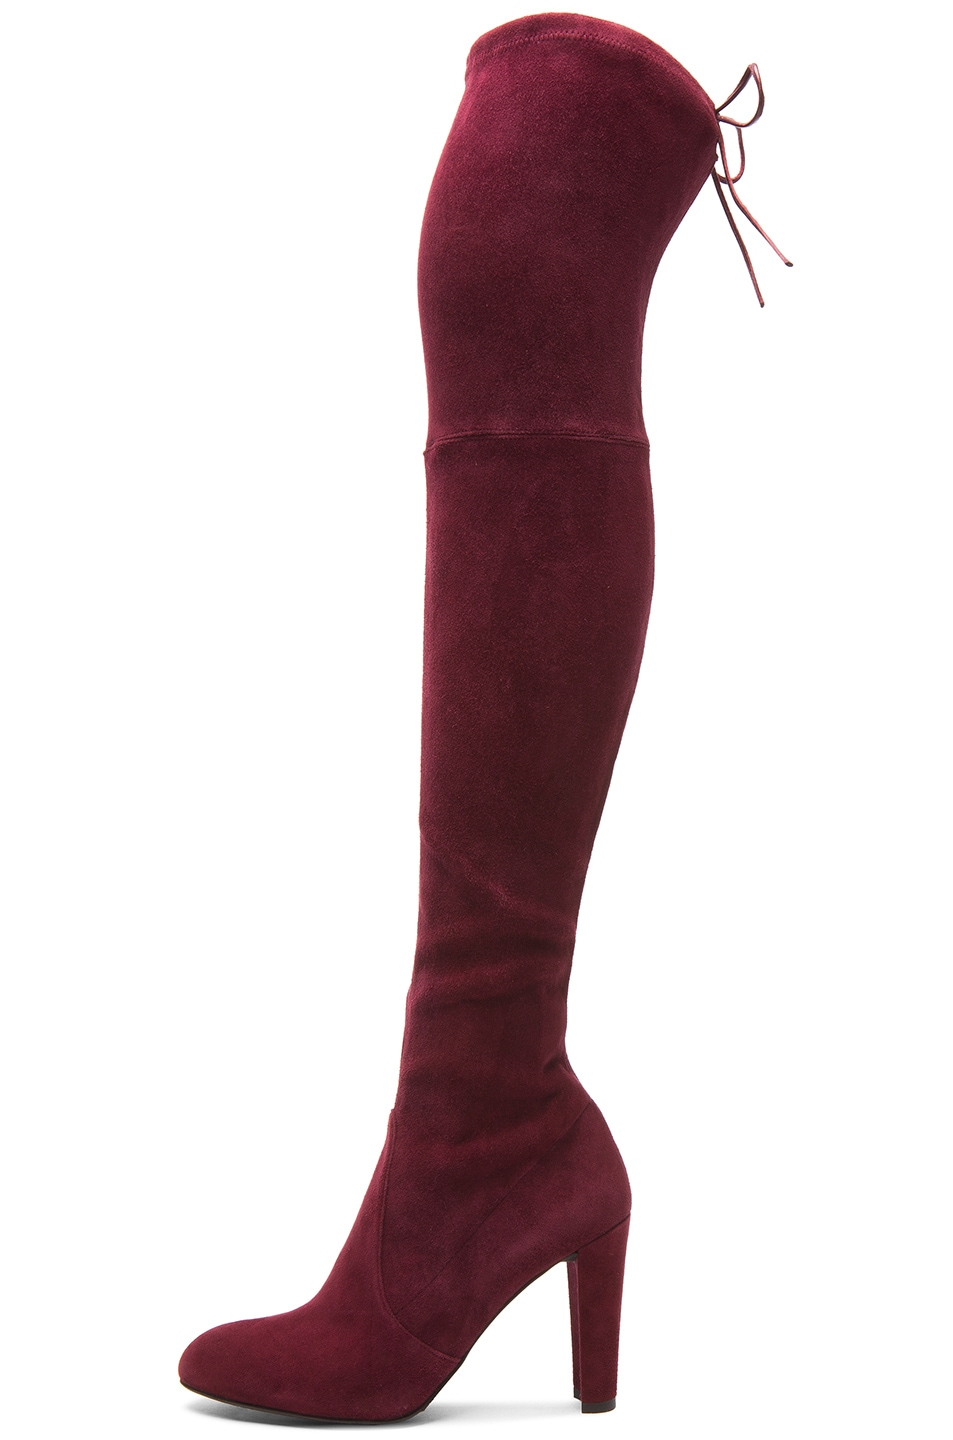 Image 5 of Stuart Weitzman Highland Suede Boots in Bordeaux Suede